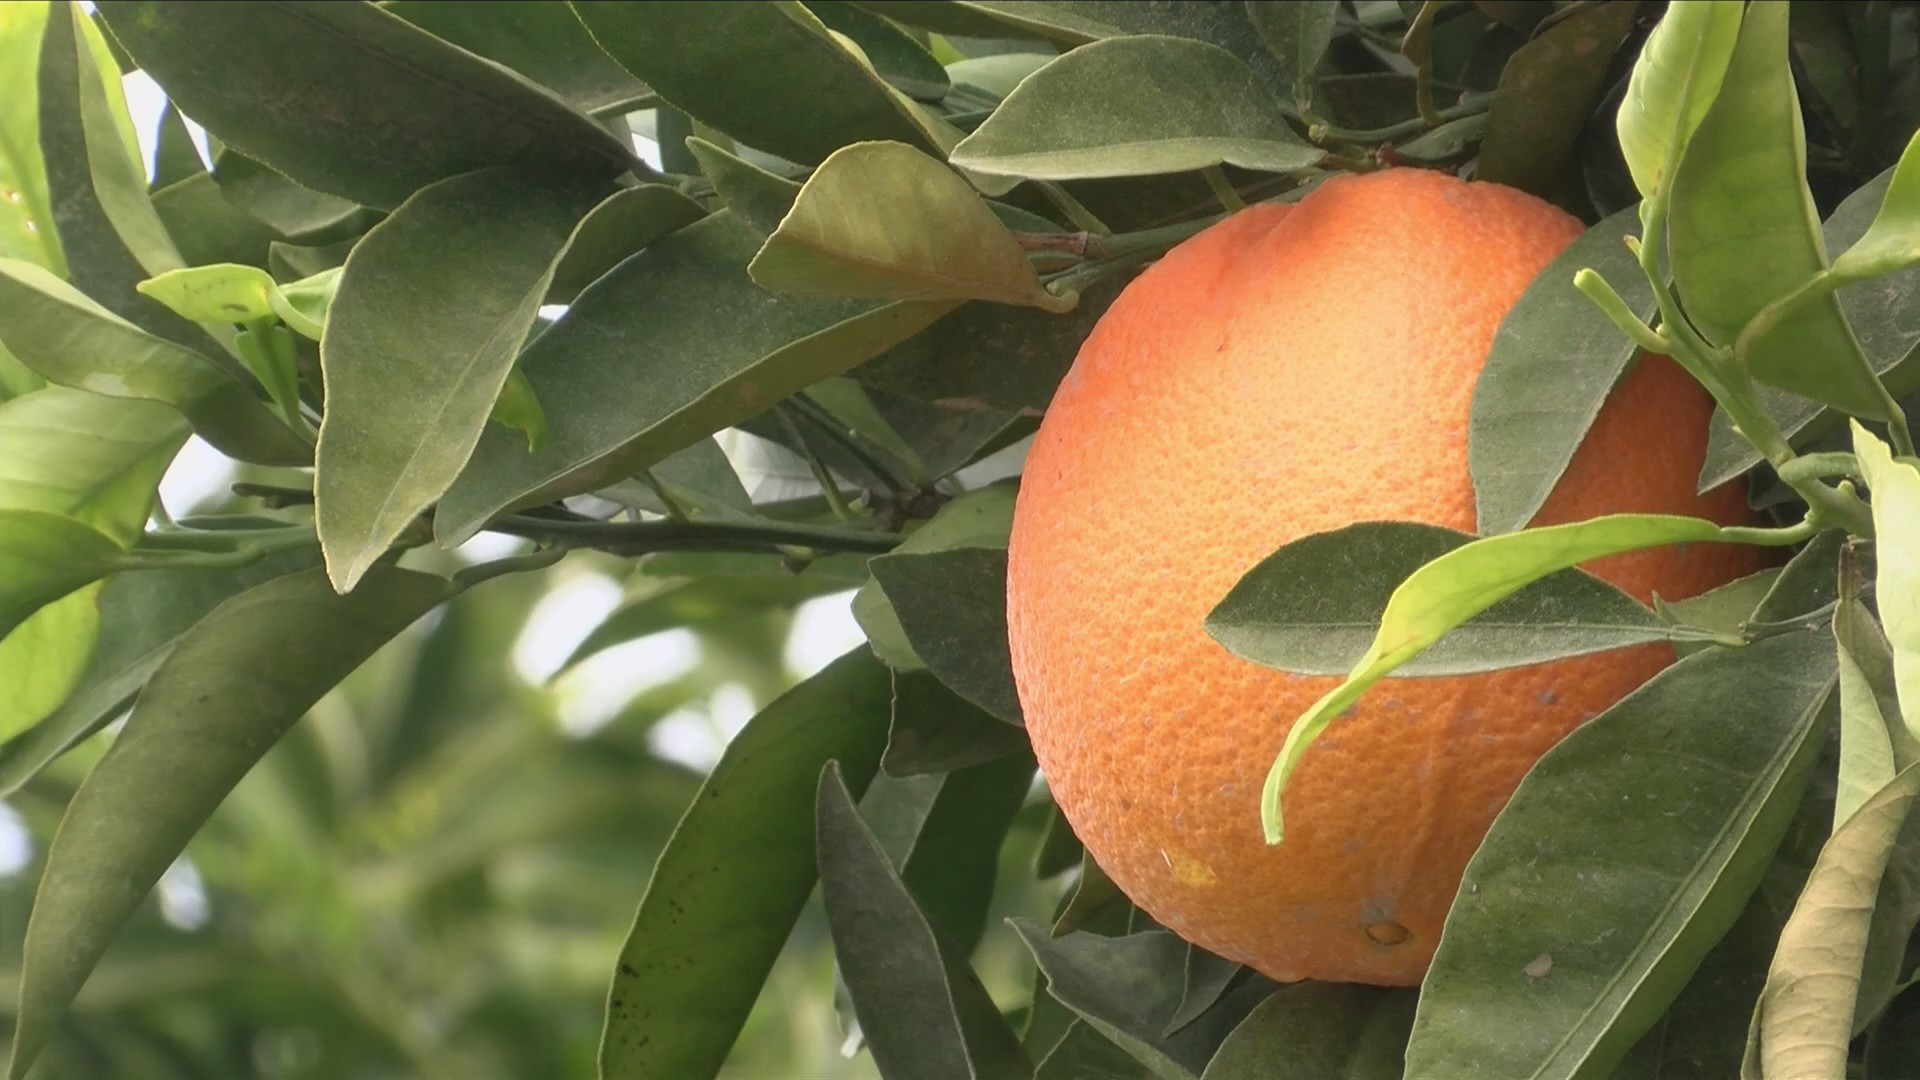 Colder temperatures could lead to sweeter fruit